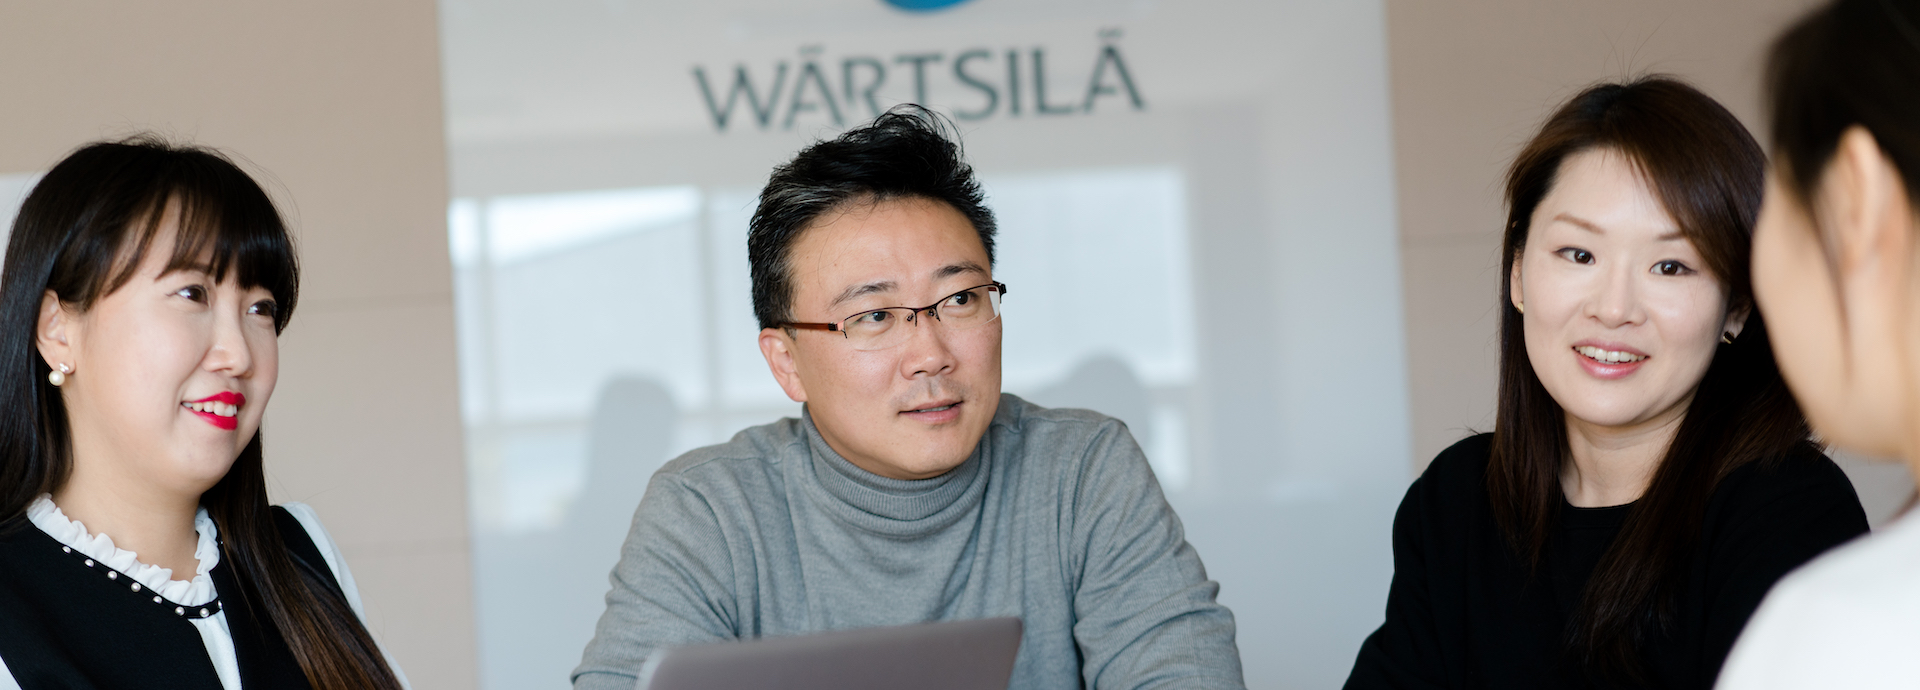 Wärtsilä Korea employees